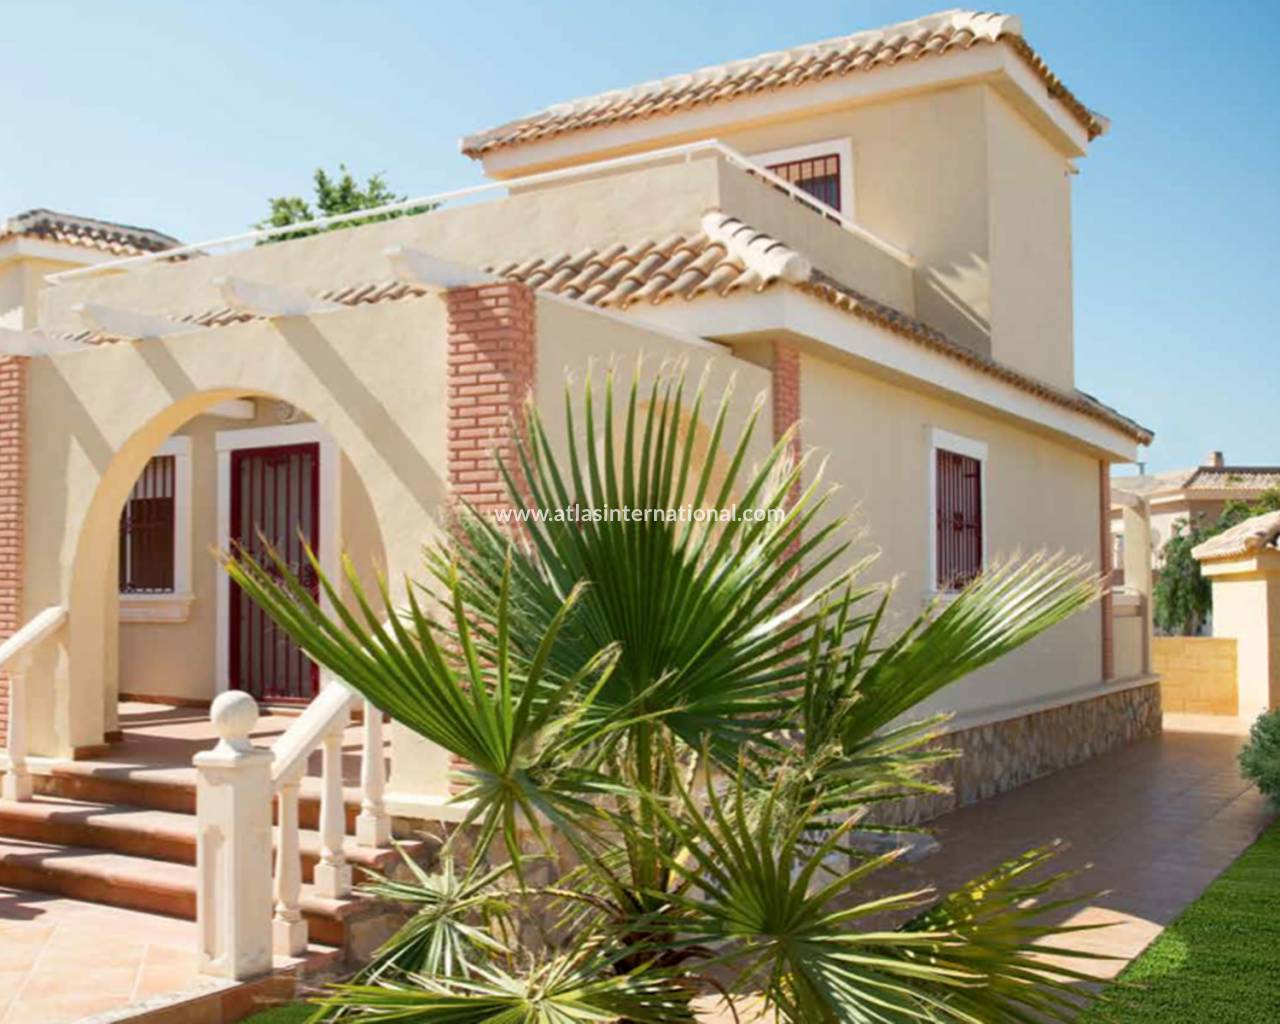 Detached Villa - New Build - Balsicas - Balsicas